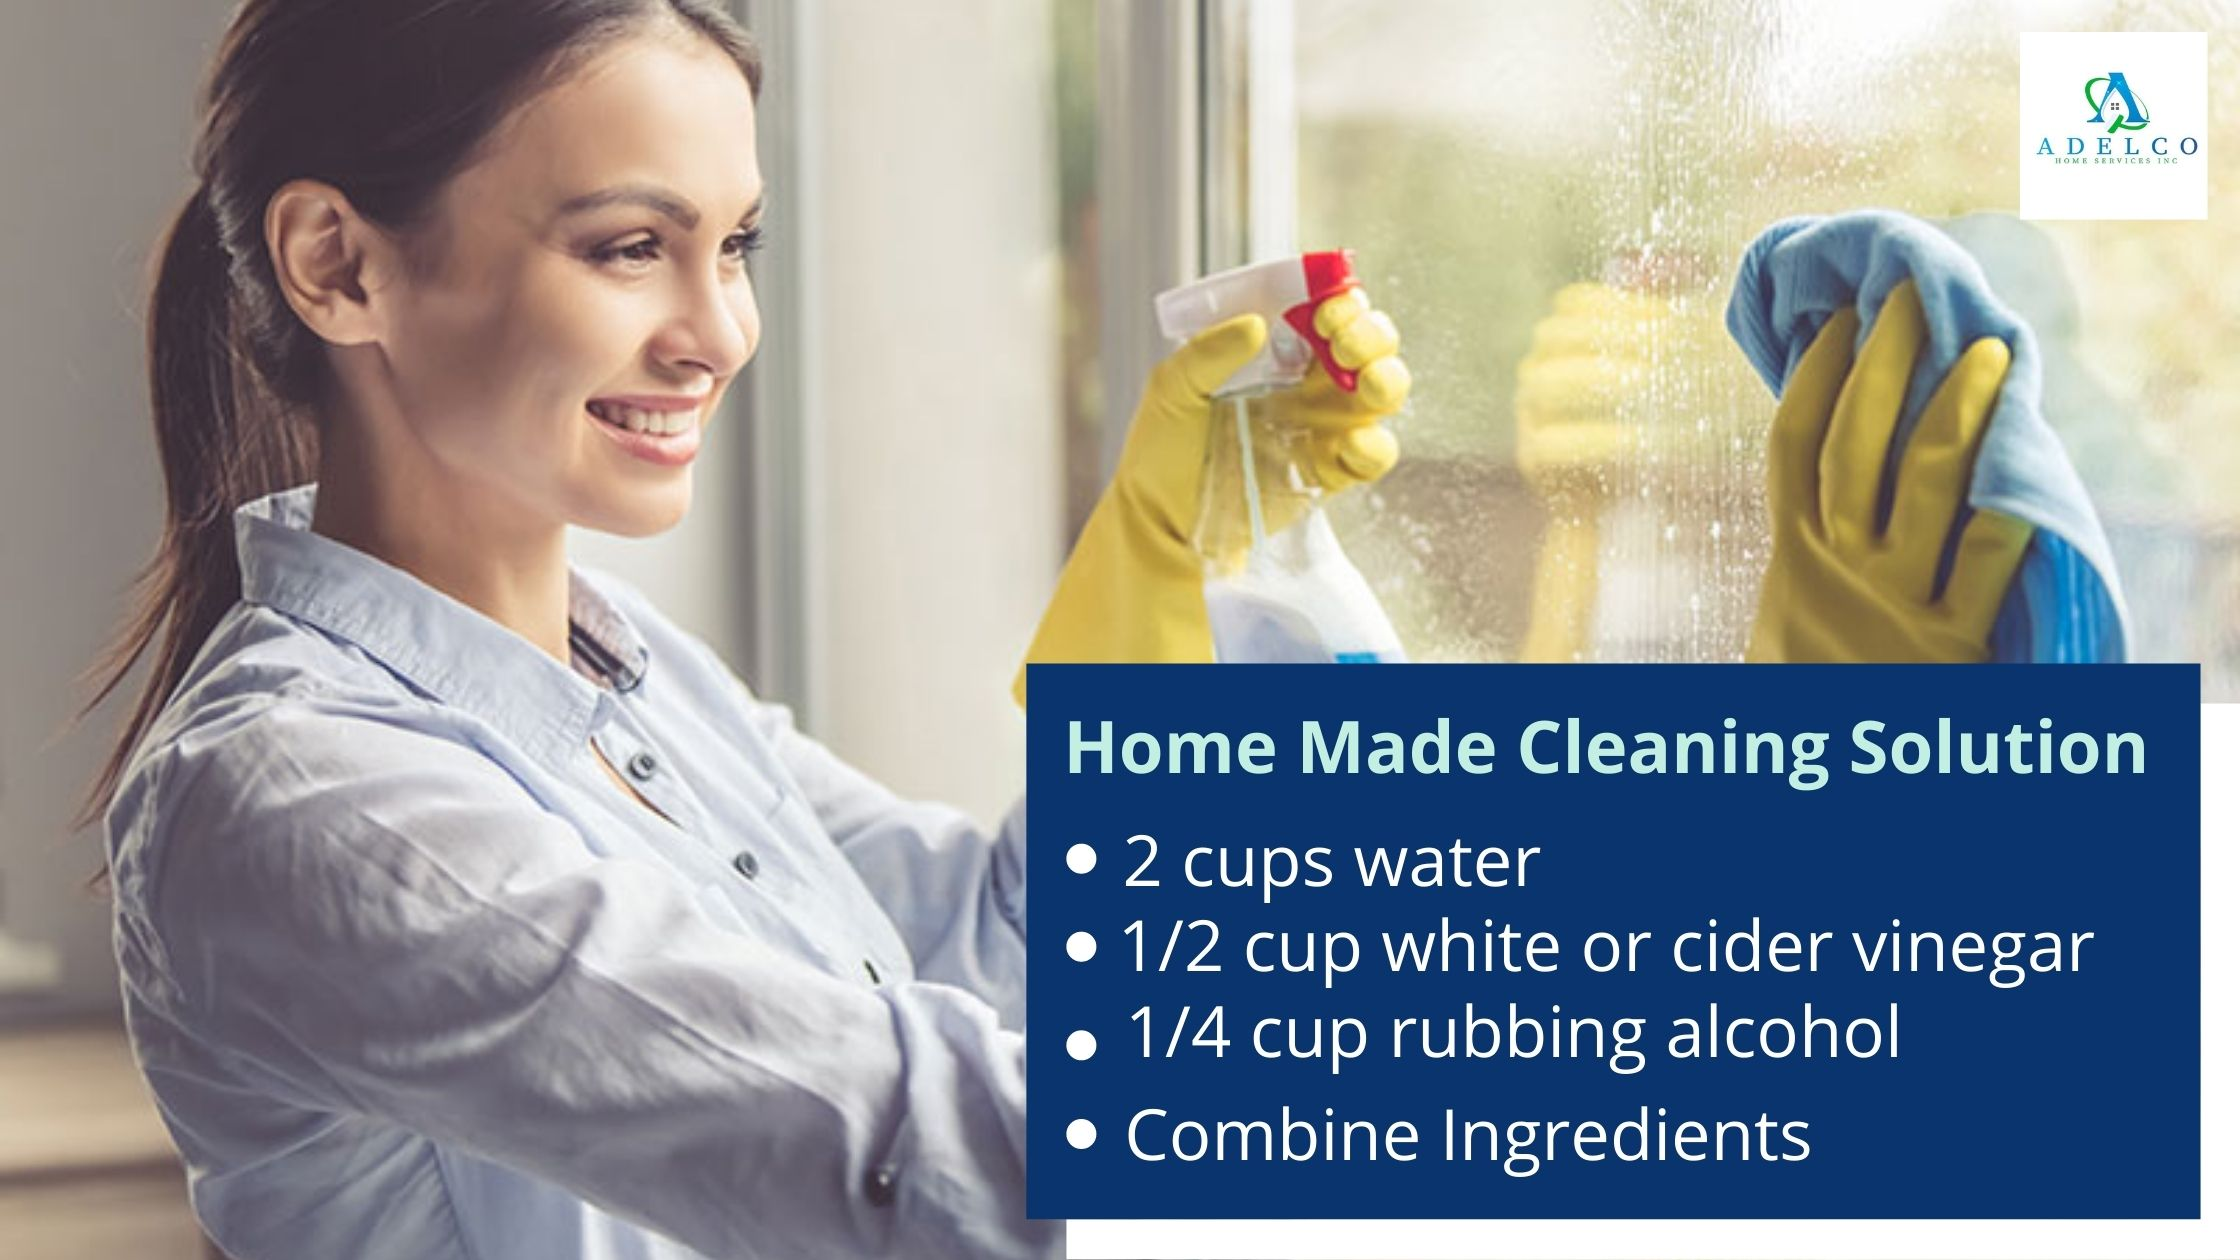 How to Make Home Made Window Cleaning Solution